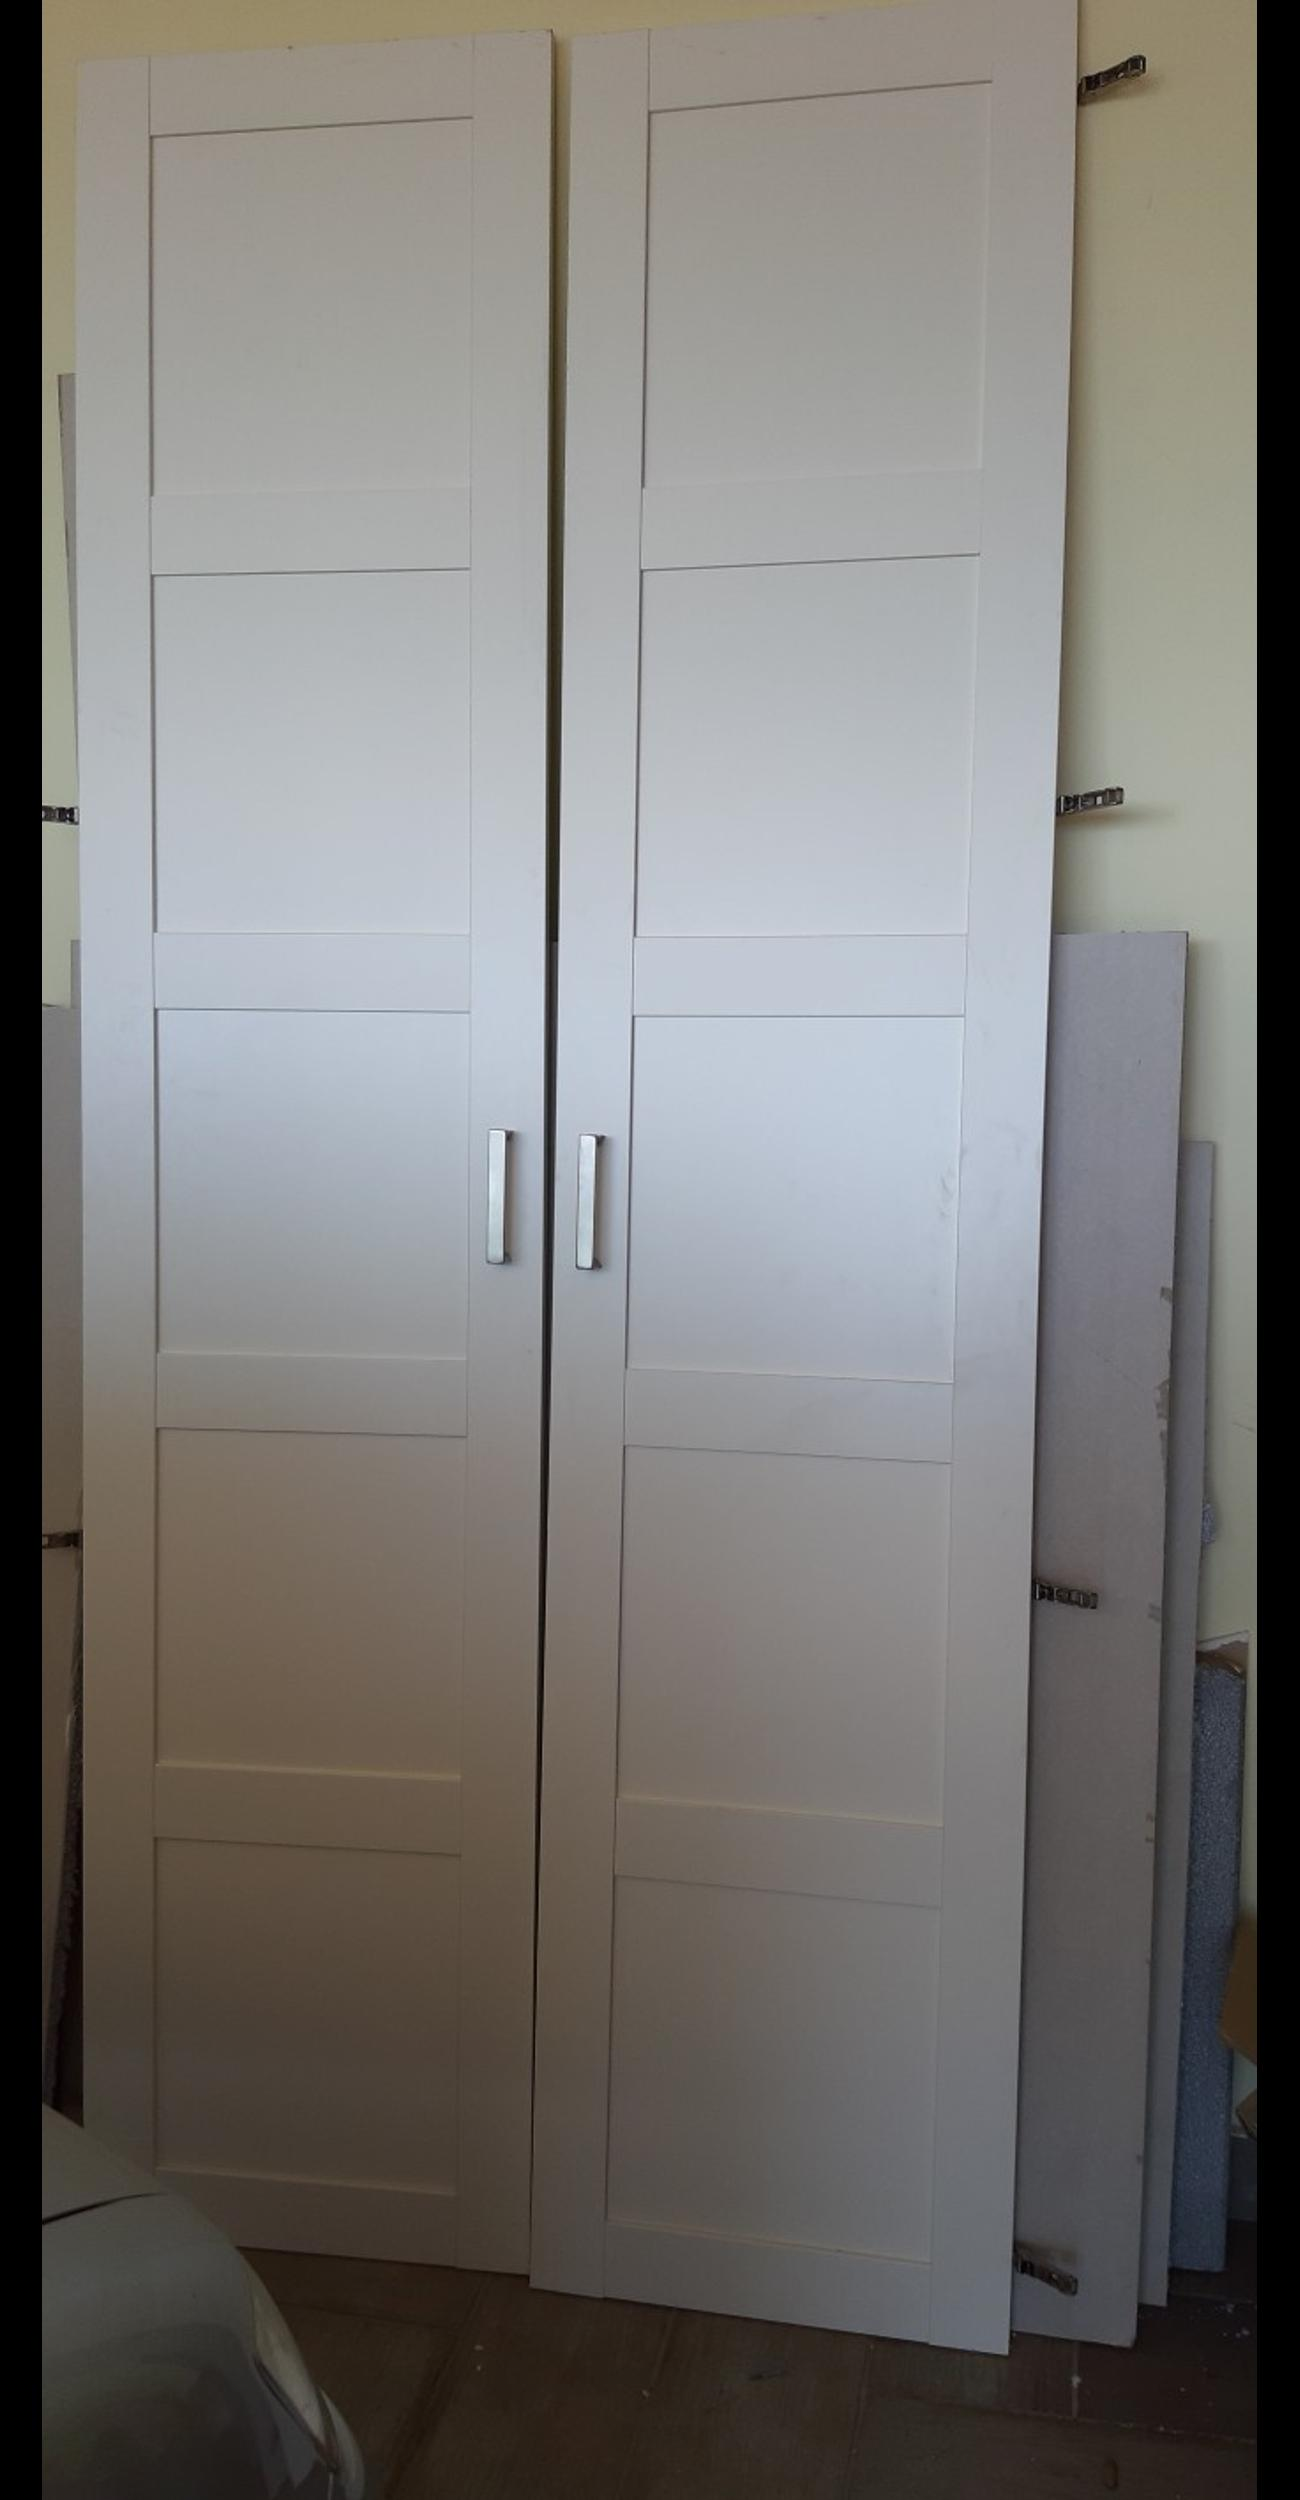 Armadio Pax Ikea 2 Ante.Ante Ikea Pax In Marsicovetere For 40 00 For Sale Shpock